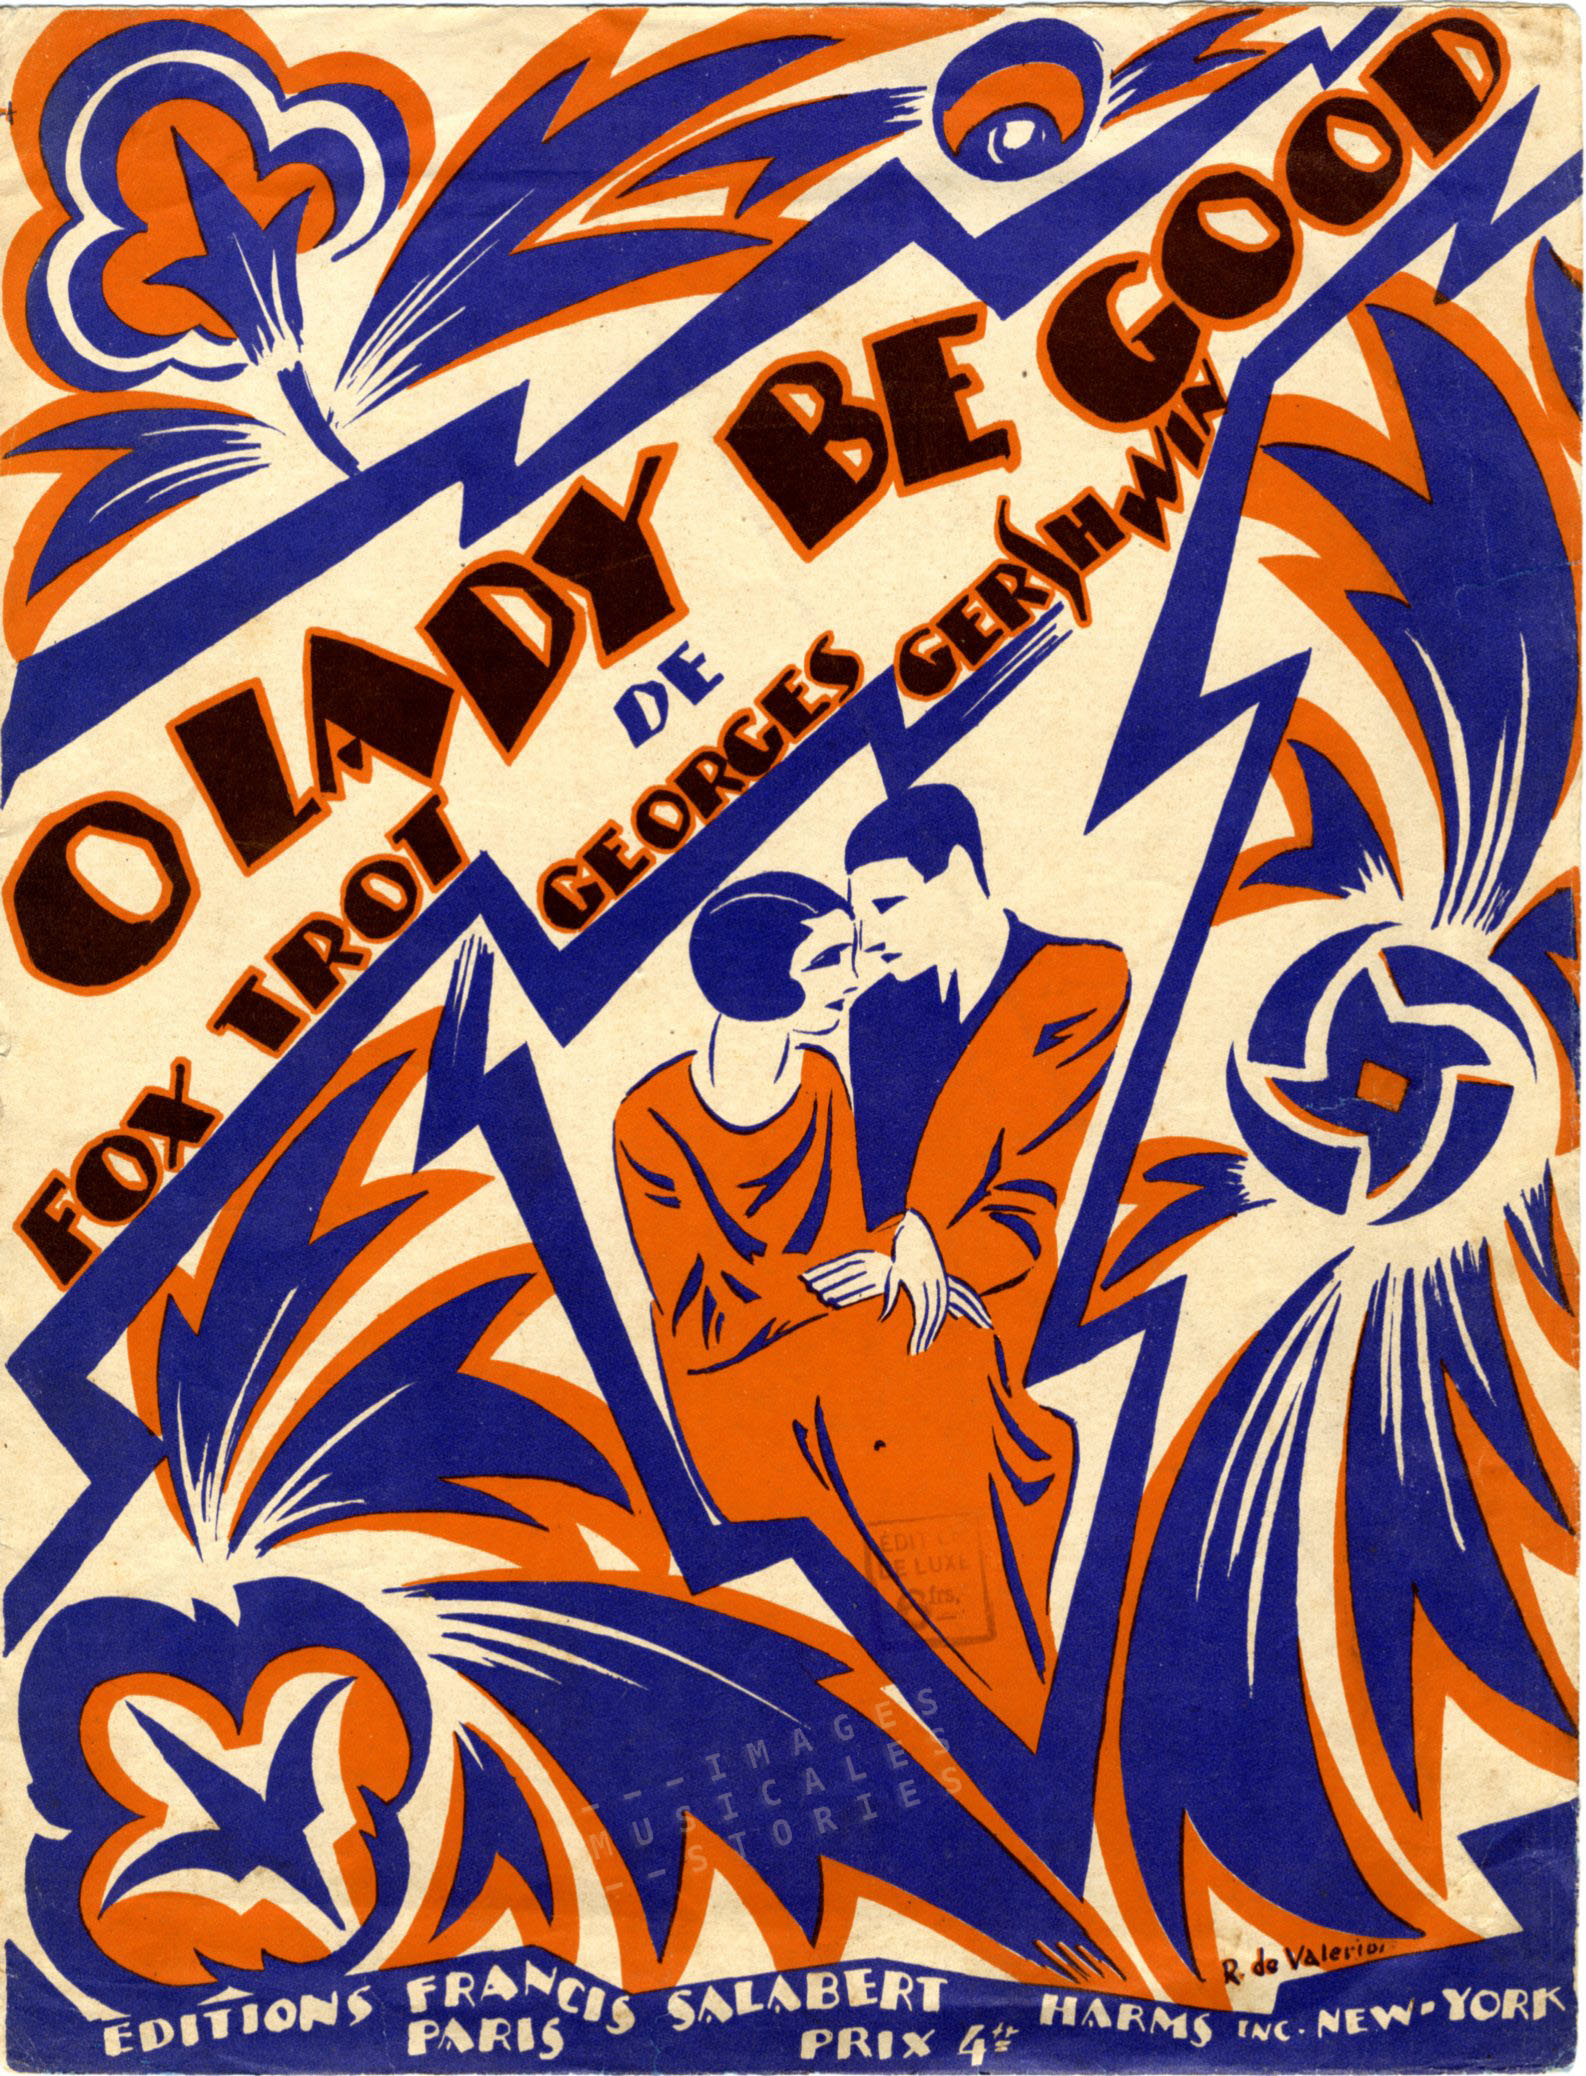 'O Lady be Good' by George and Ira Gershwin. Sheet Music published by Editions Francis Salabert, Paris, 1925. Cover illustrated by Roger de Valerio.